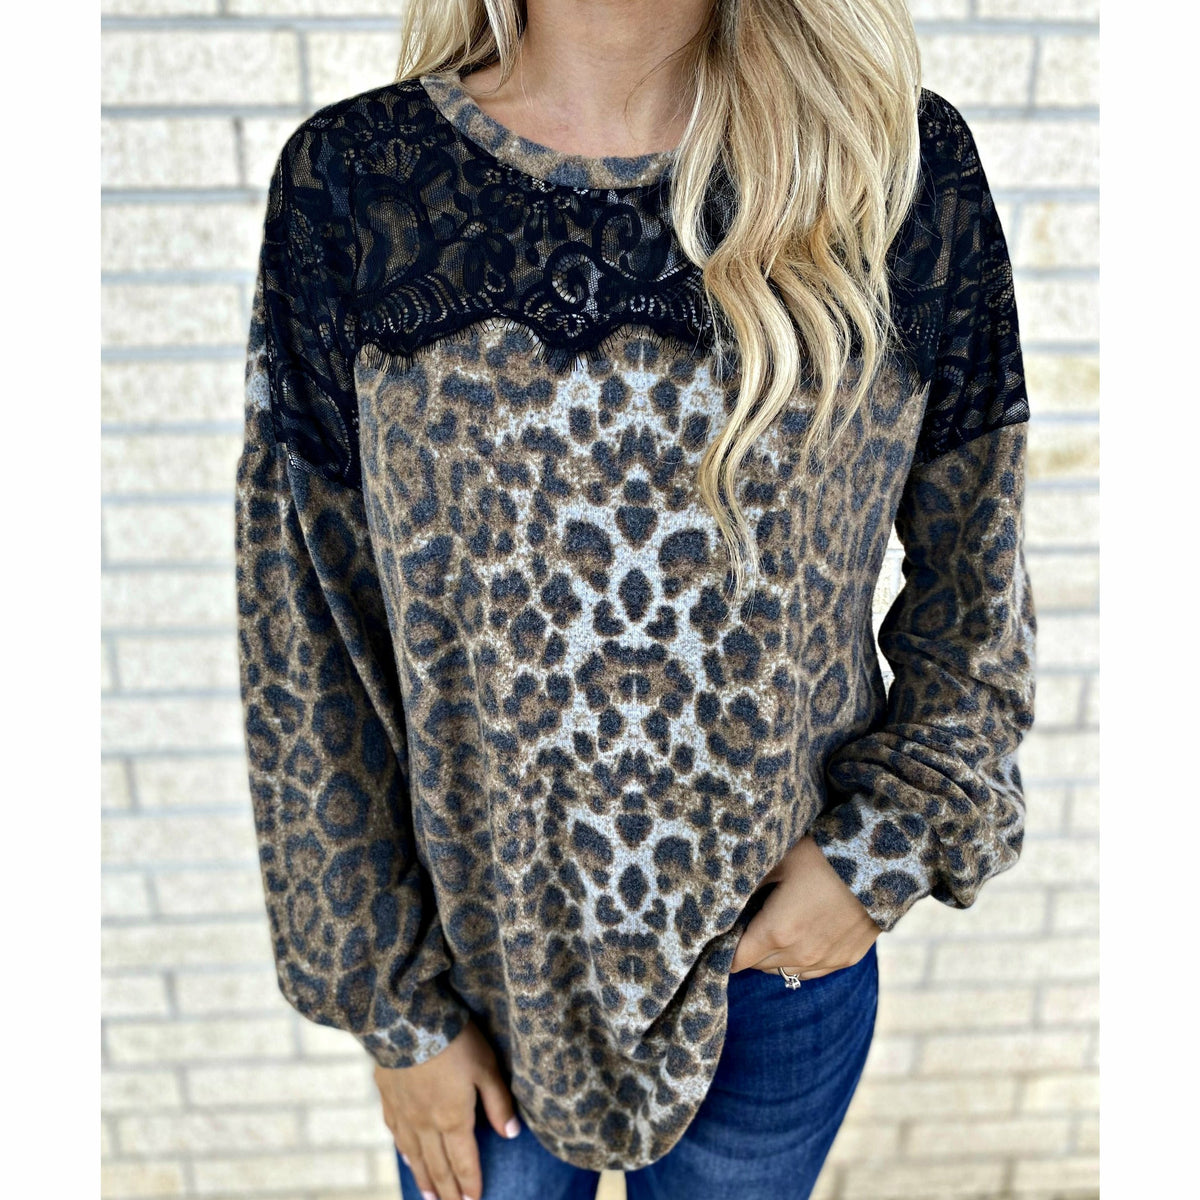 Lace it up Leopard Detail Top